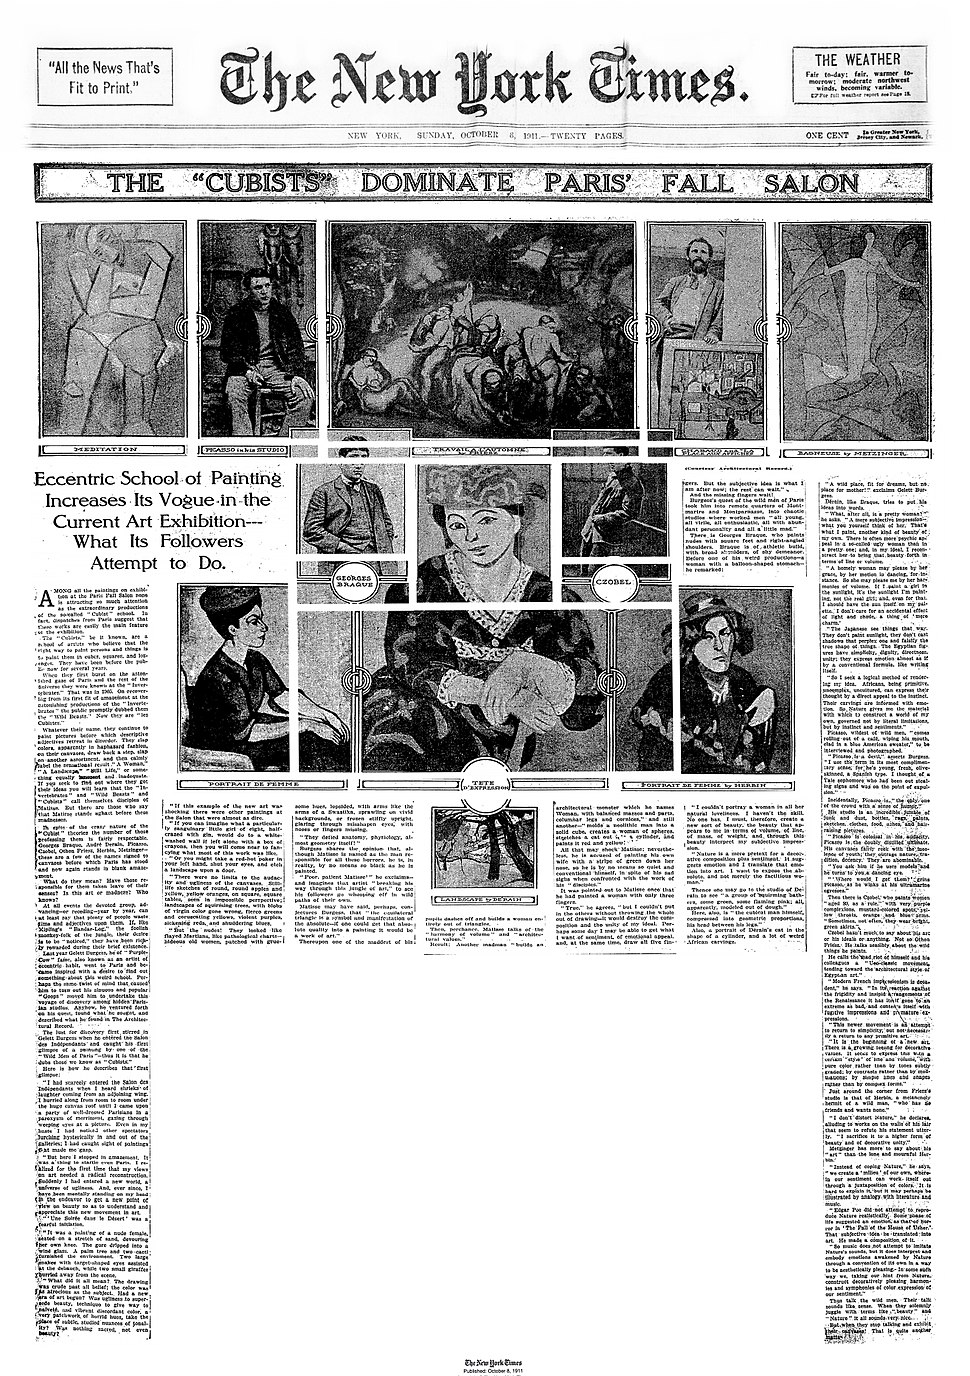 """The """"Cubists"""" Dominate Paris' Fall Salon, The New York Times, October 8, 1911"""